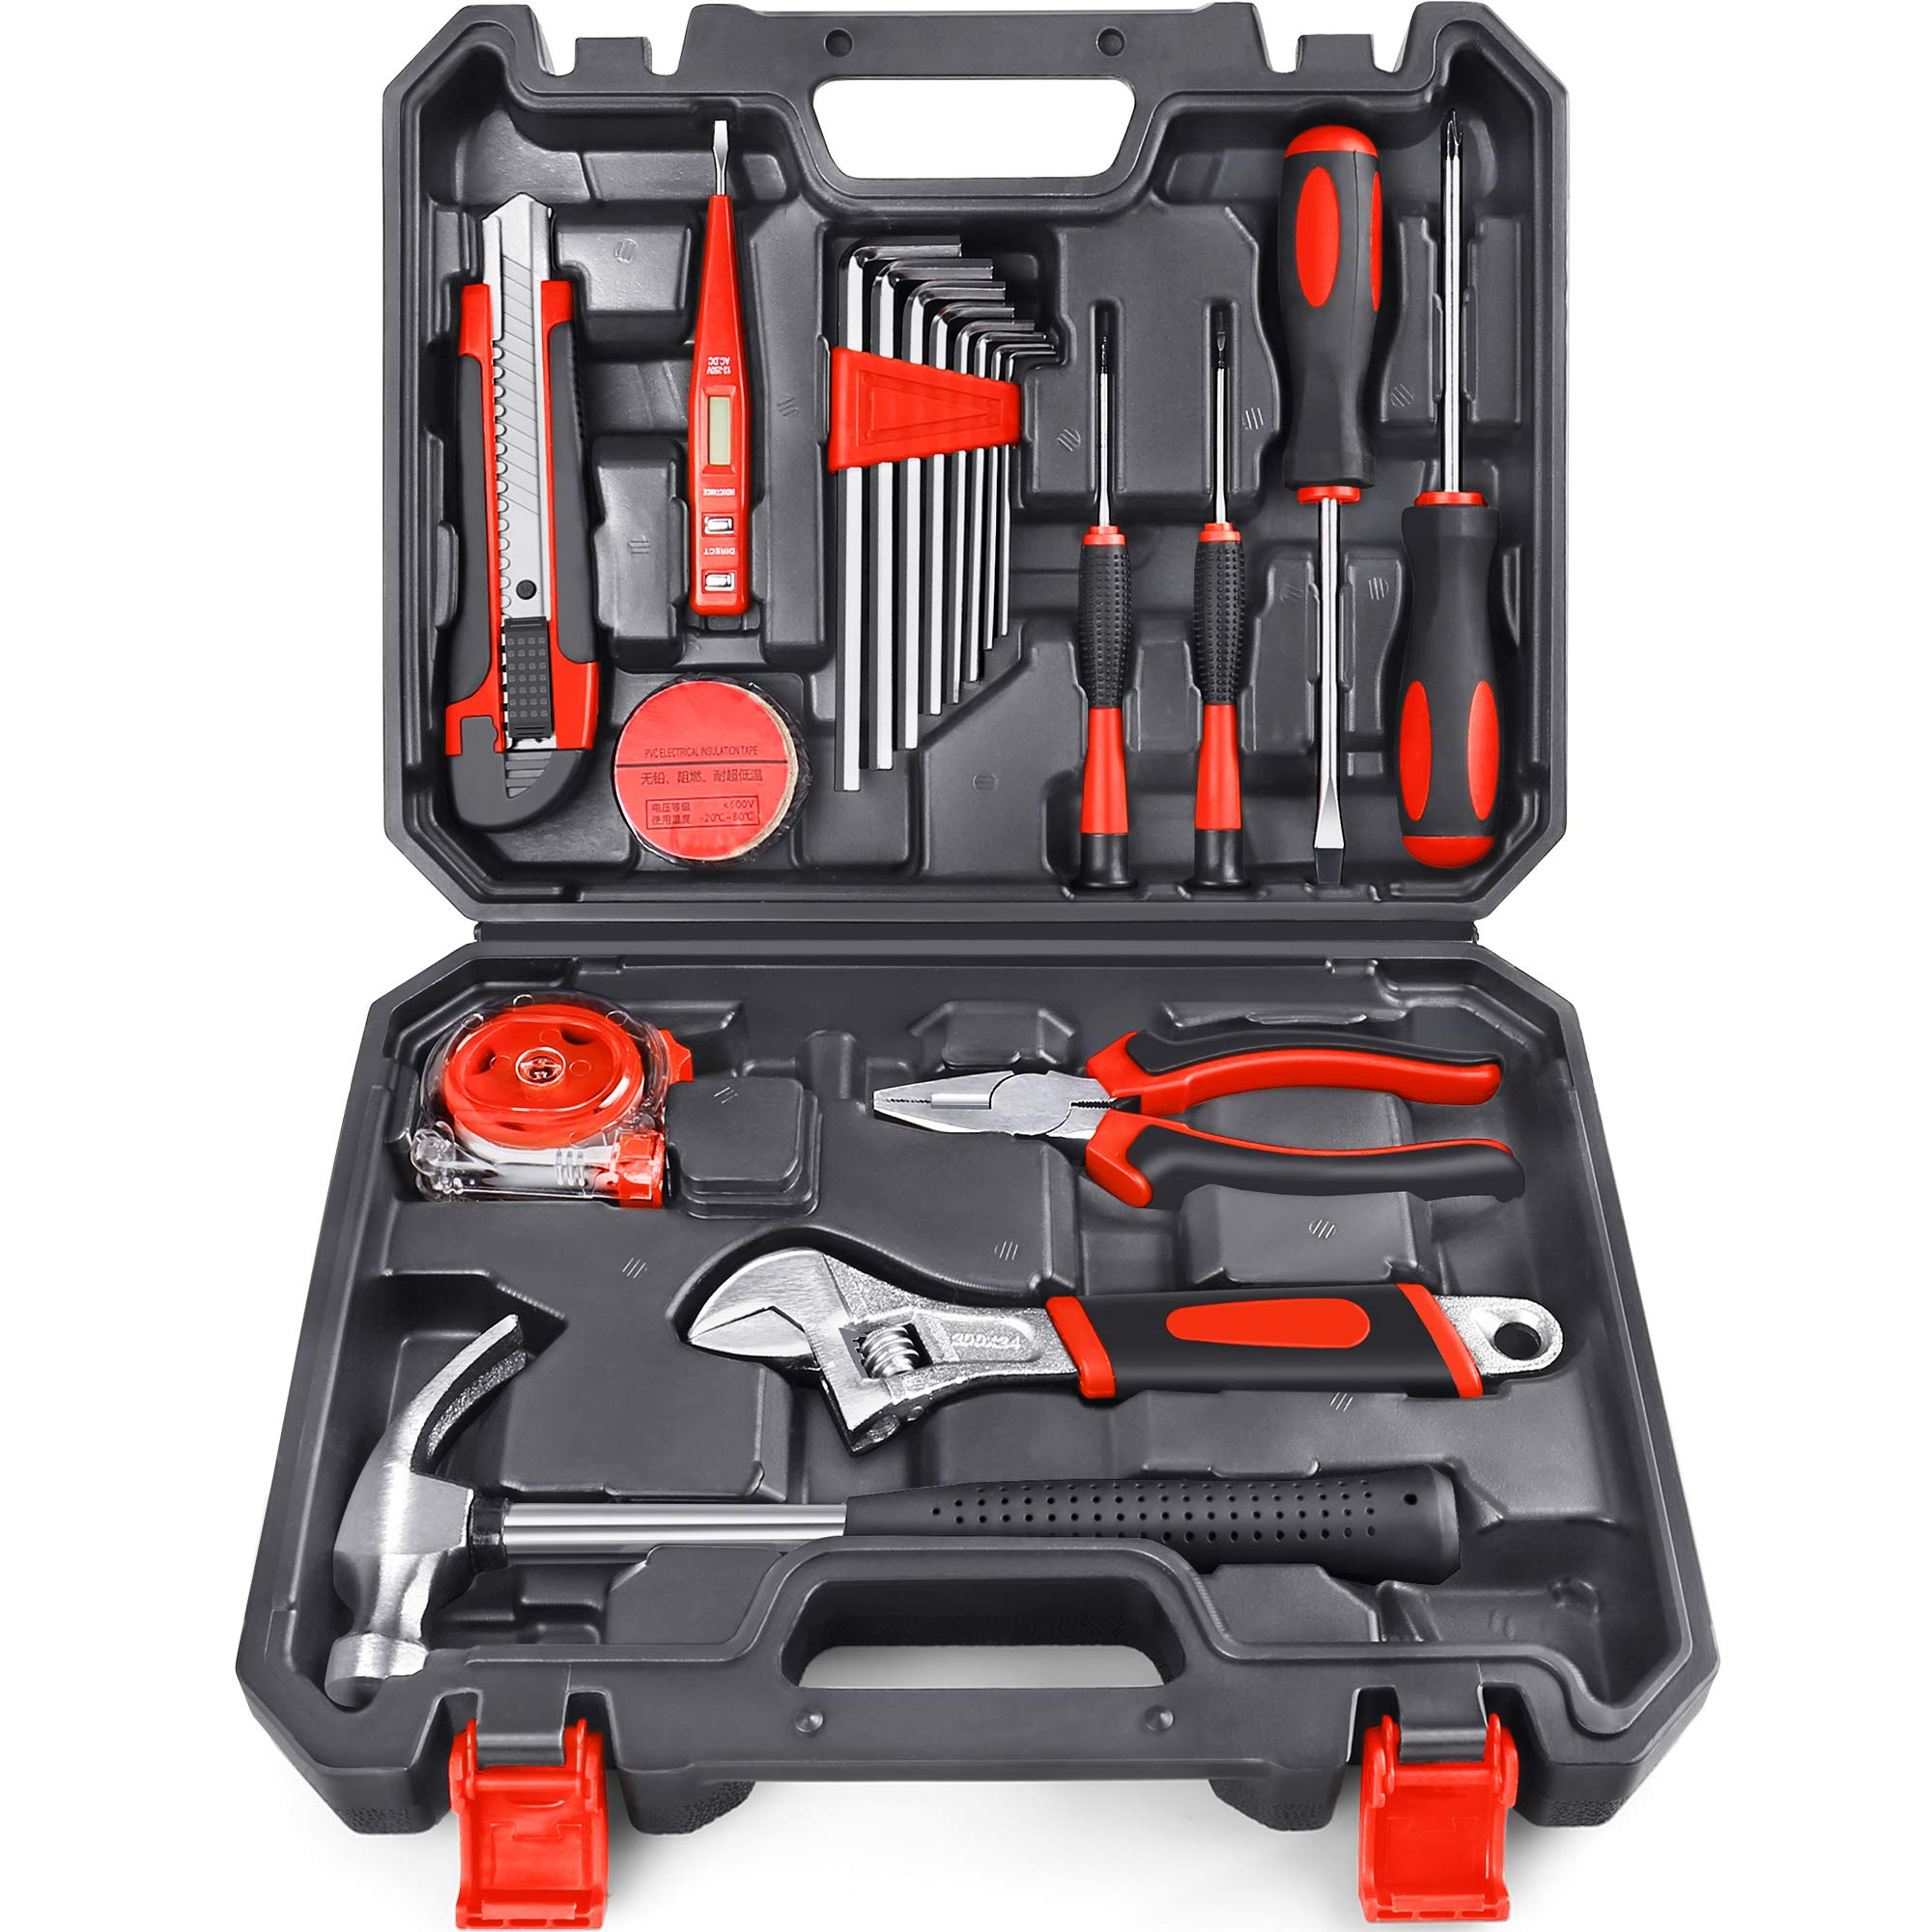 Arrinew 19pcs Household Tools Kit Home Repair Tools Set for Homeowner with